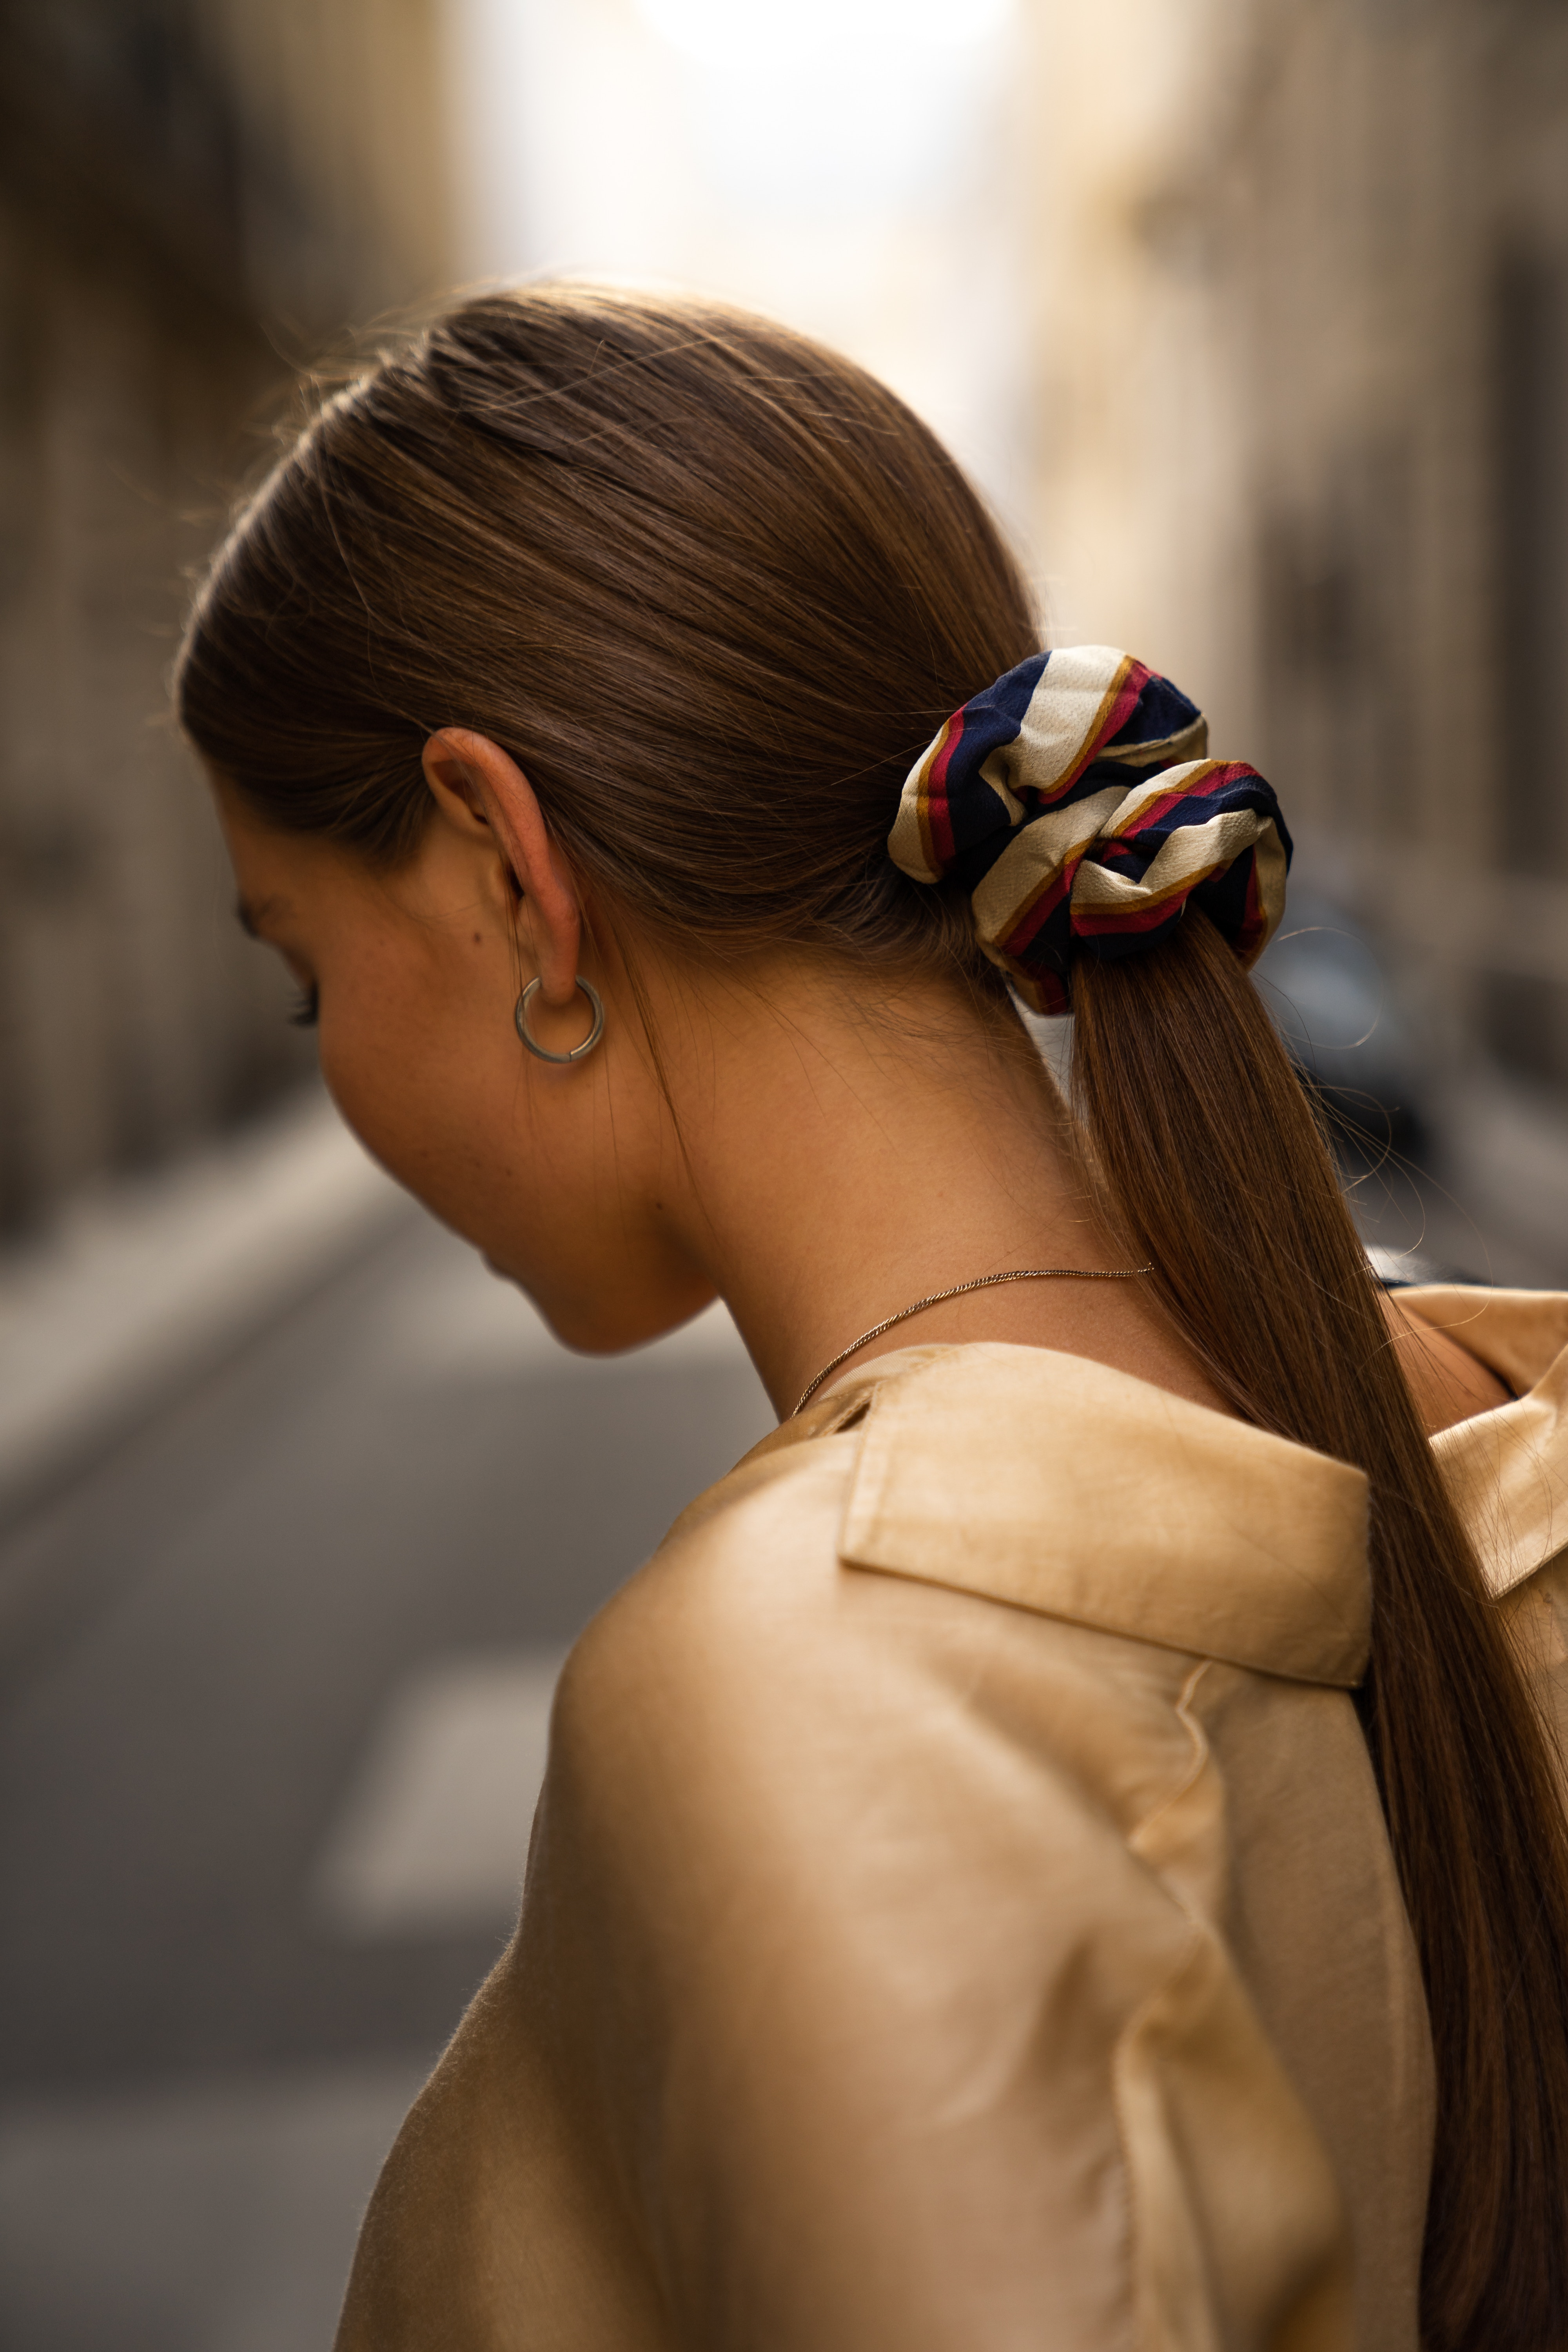 As Fashion Week month comes to an end, we pick the 4 stand out hair looks you'll be wearing this A/W19, if not before….